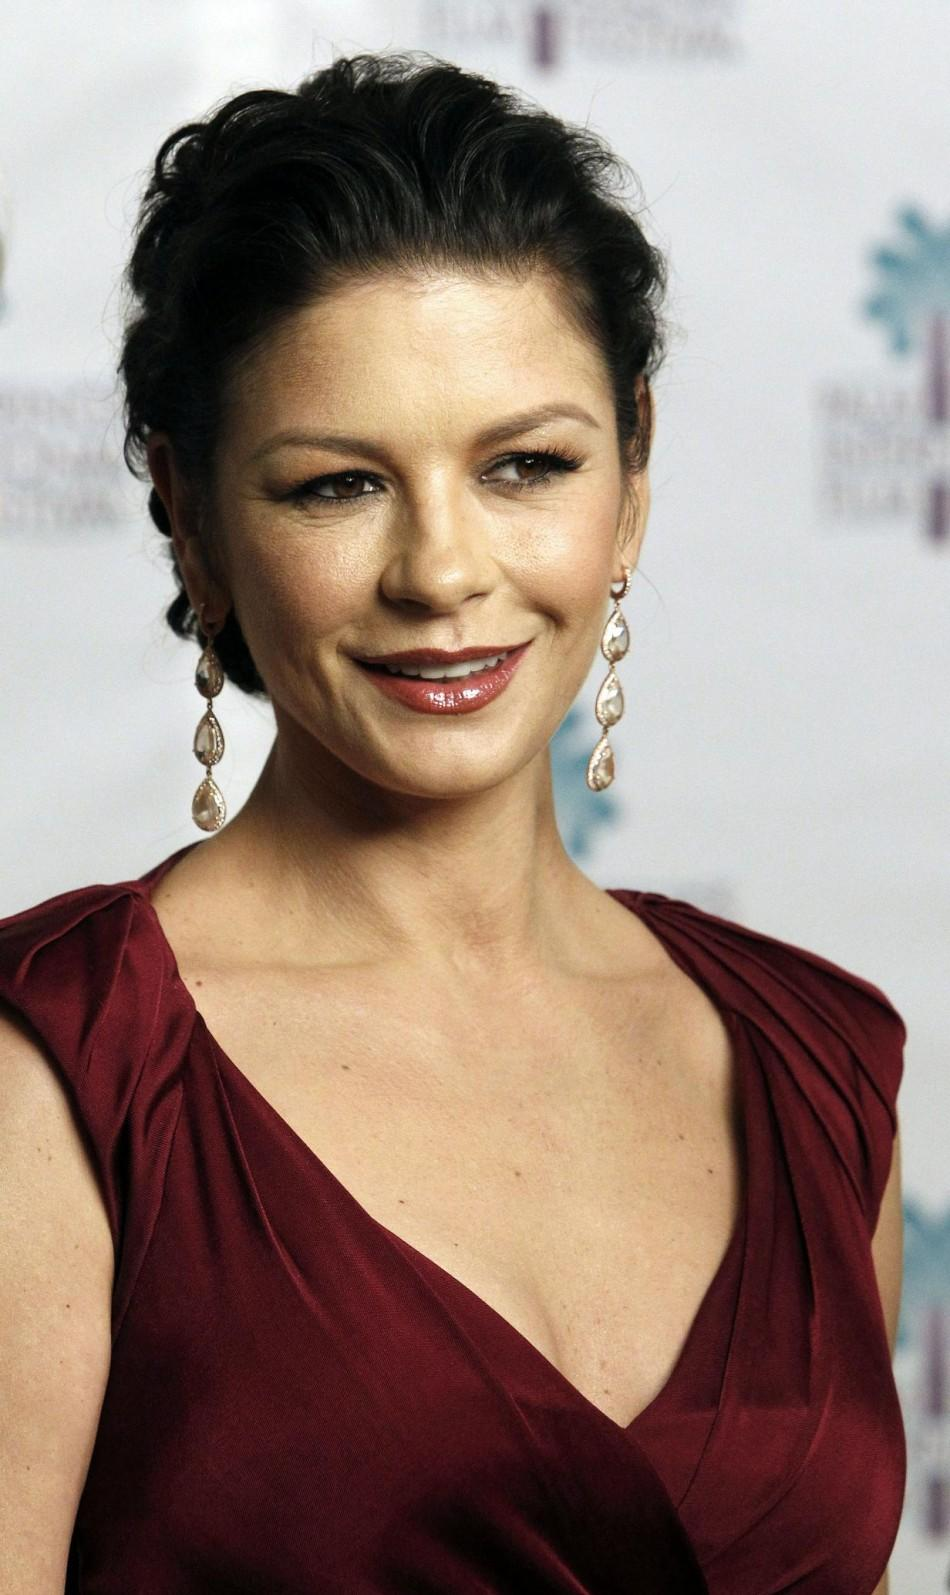 Actress Catherine Zeta-Jones smiles as she arrives for her husband Michael Douglas to receive the Icon Award at the 22nd Annual Palm Springs International Film Festival Gala.